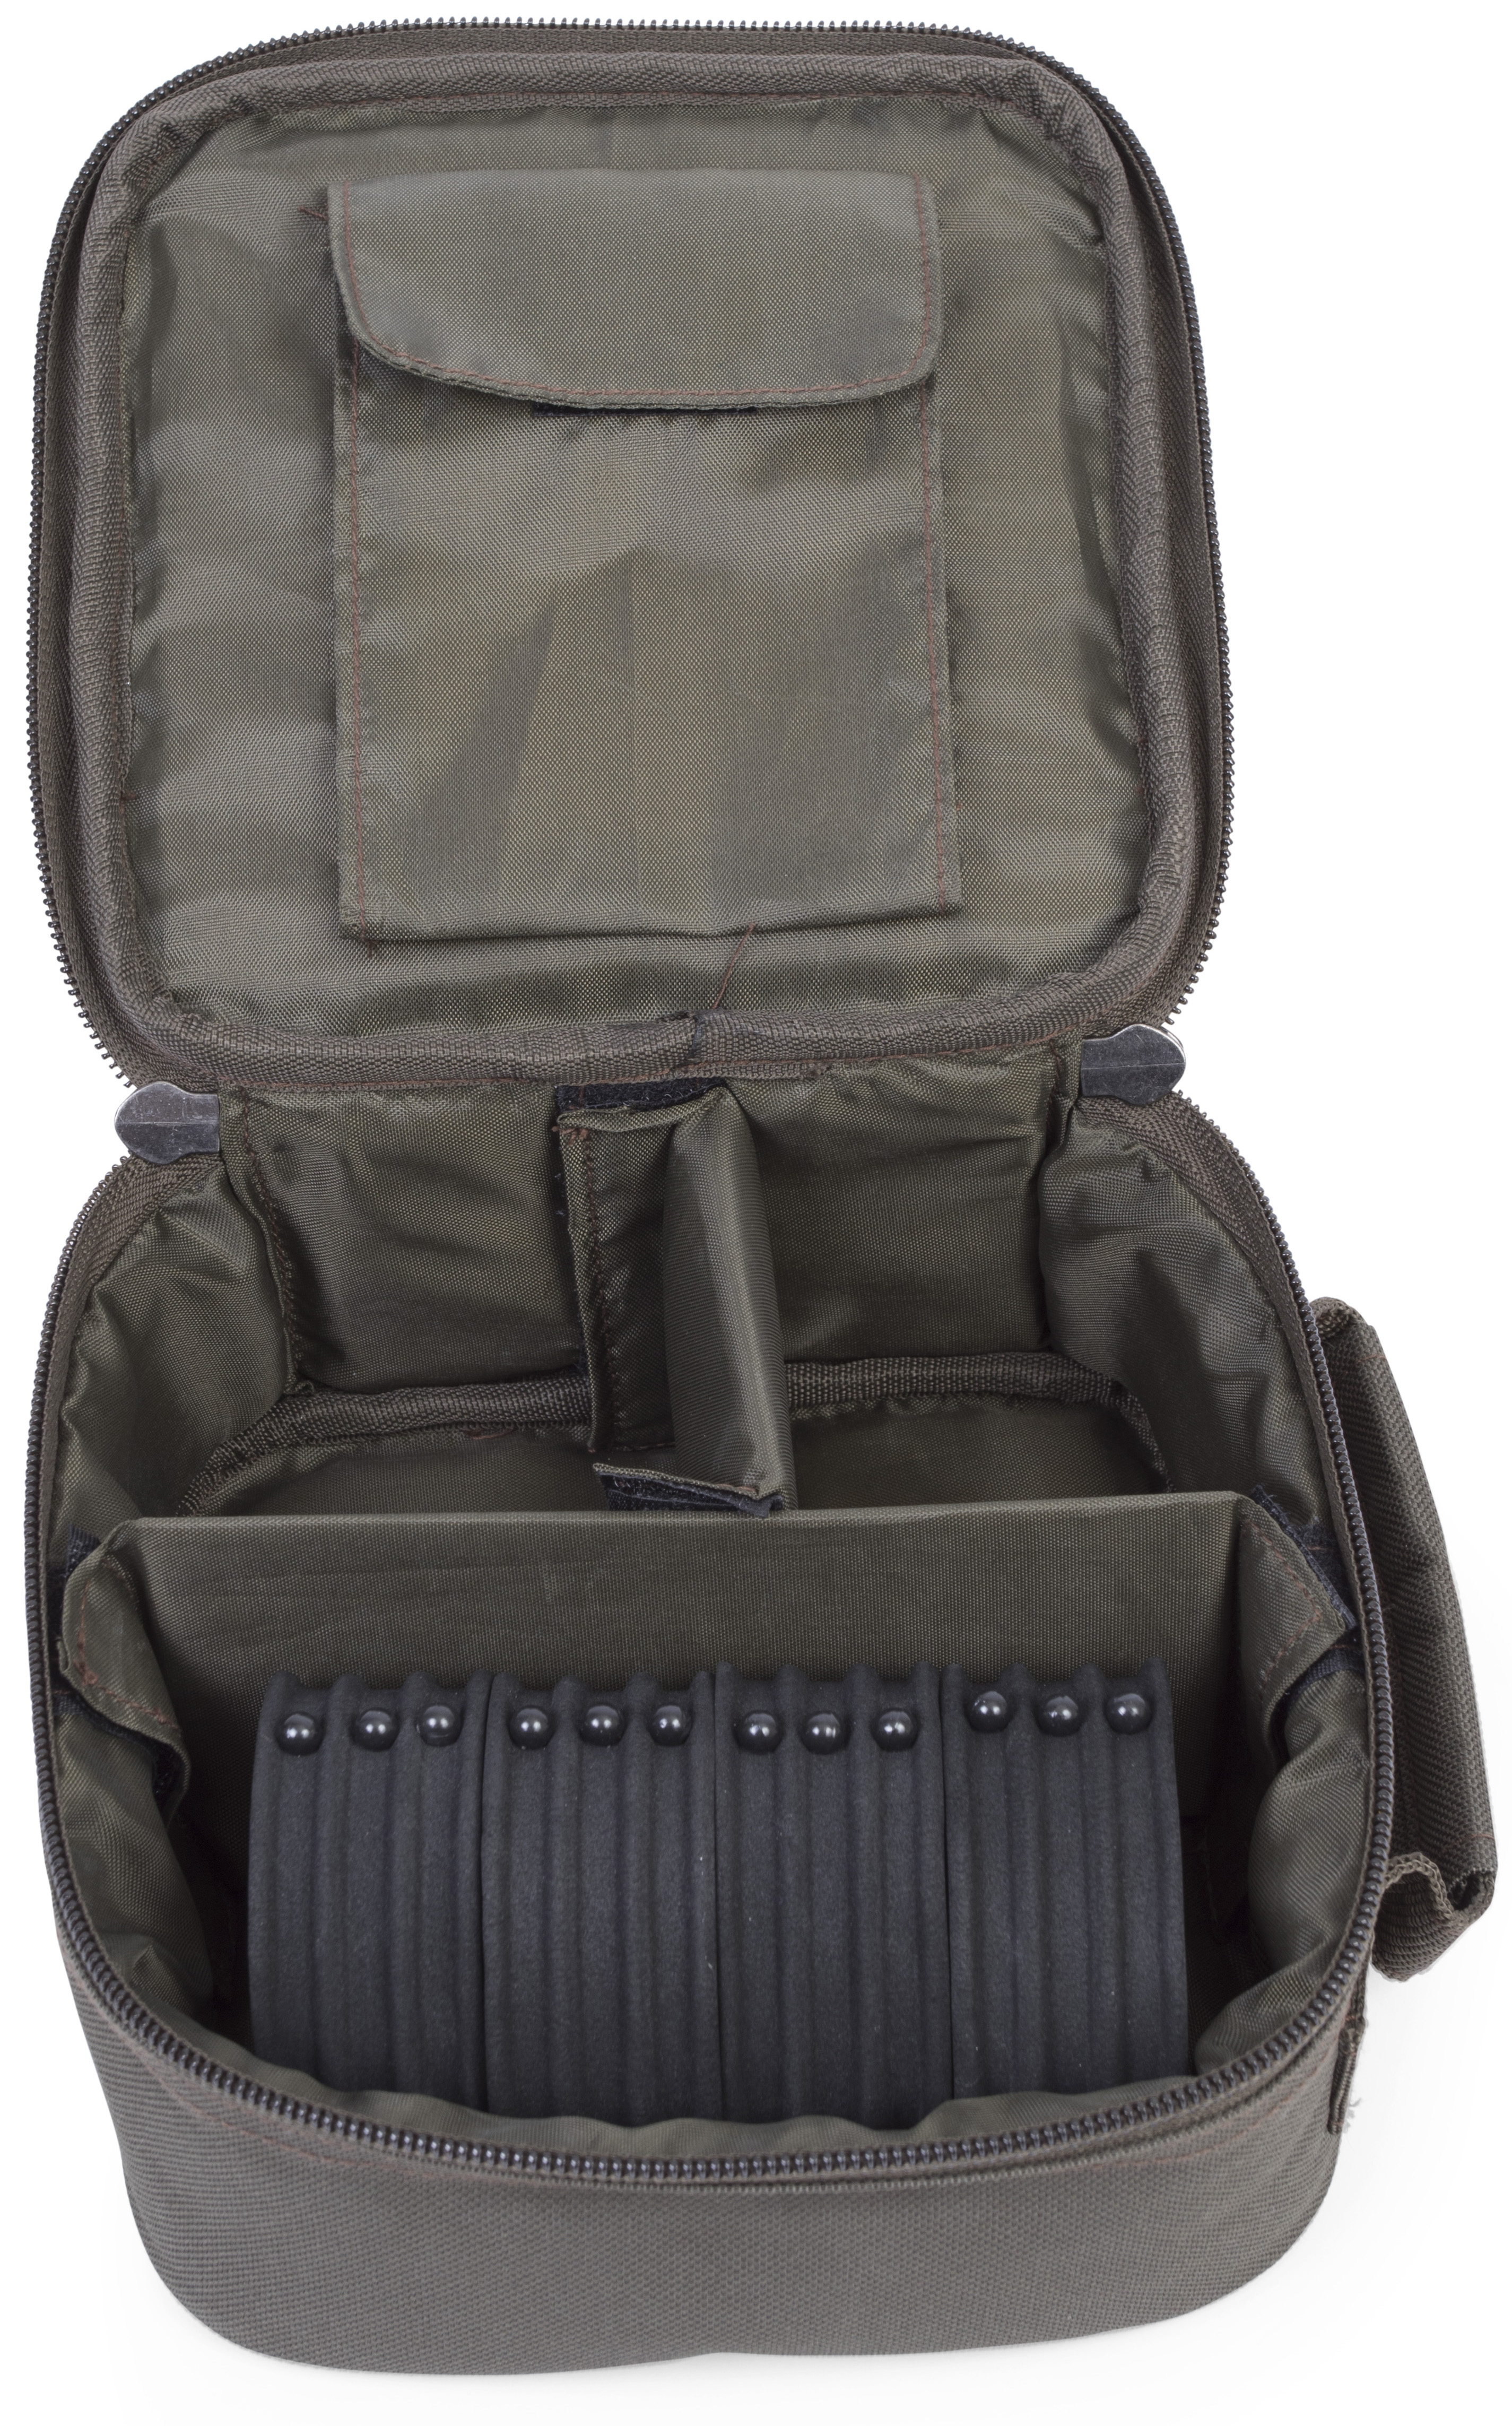 Avid carp chod rig bag glasgow angling centre for Rigged fishing backpack